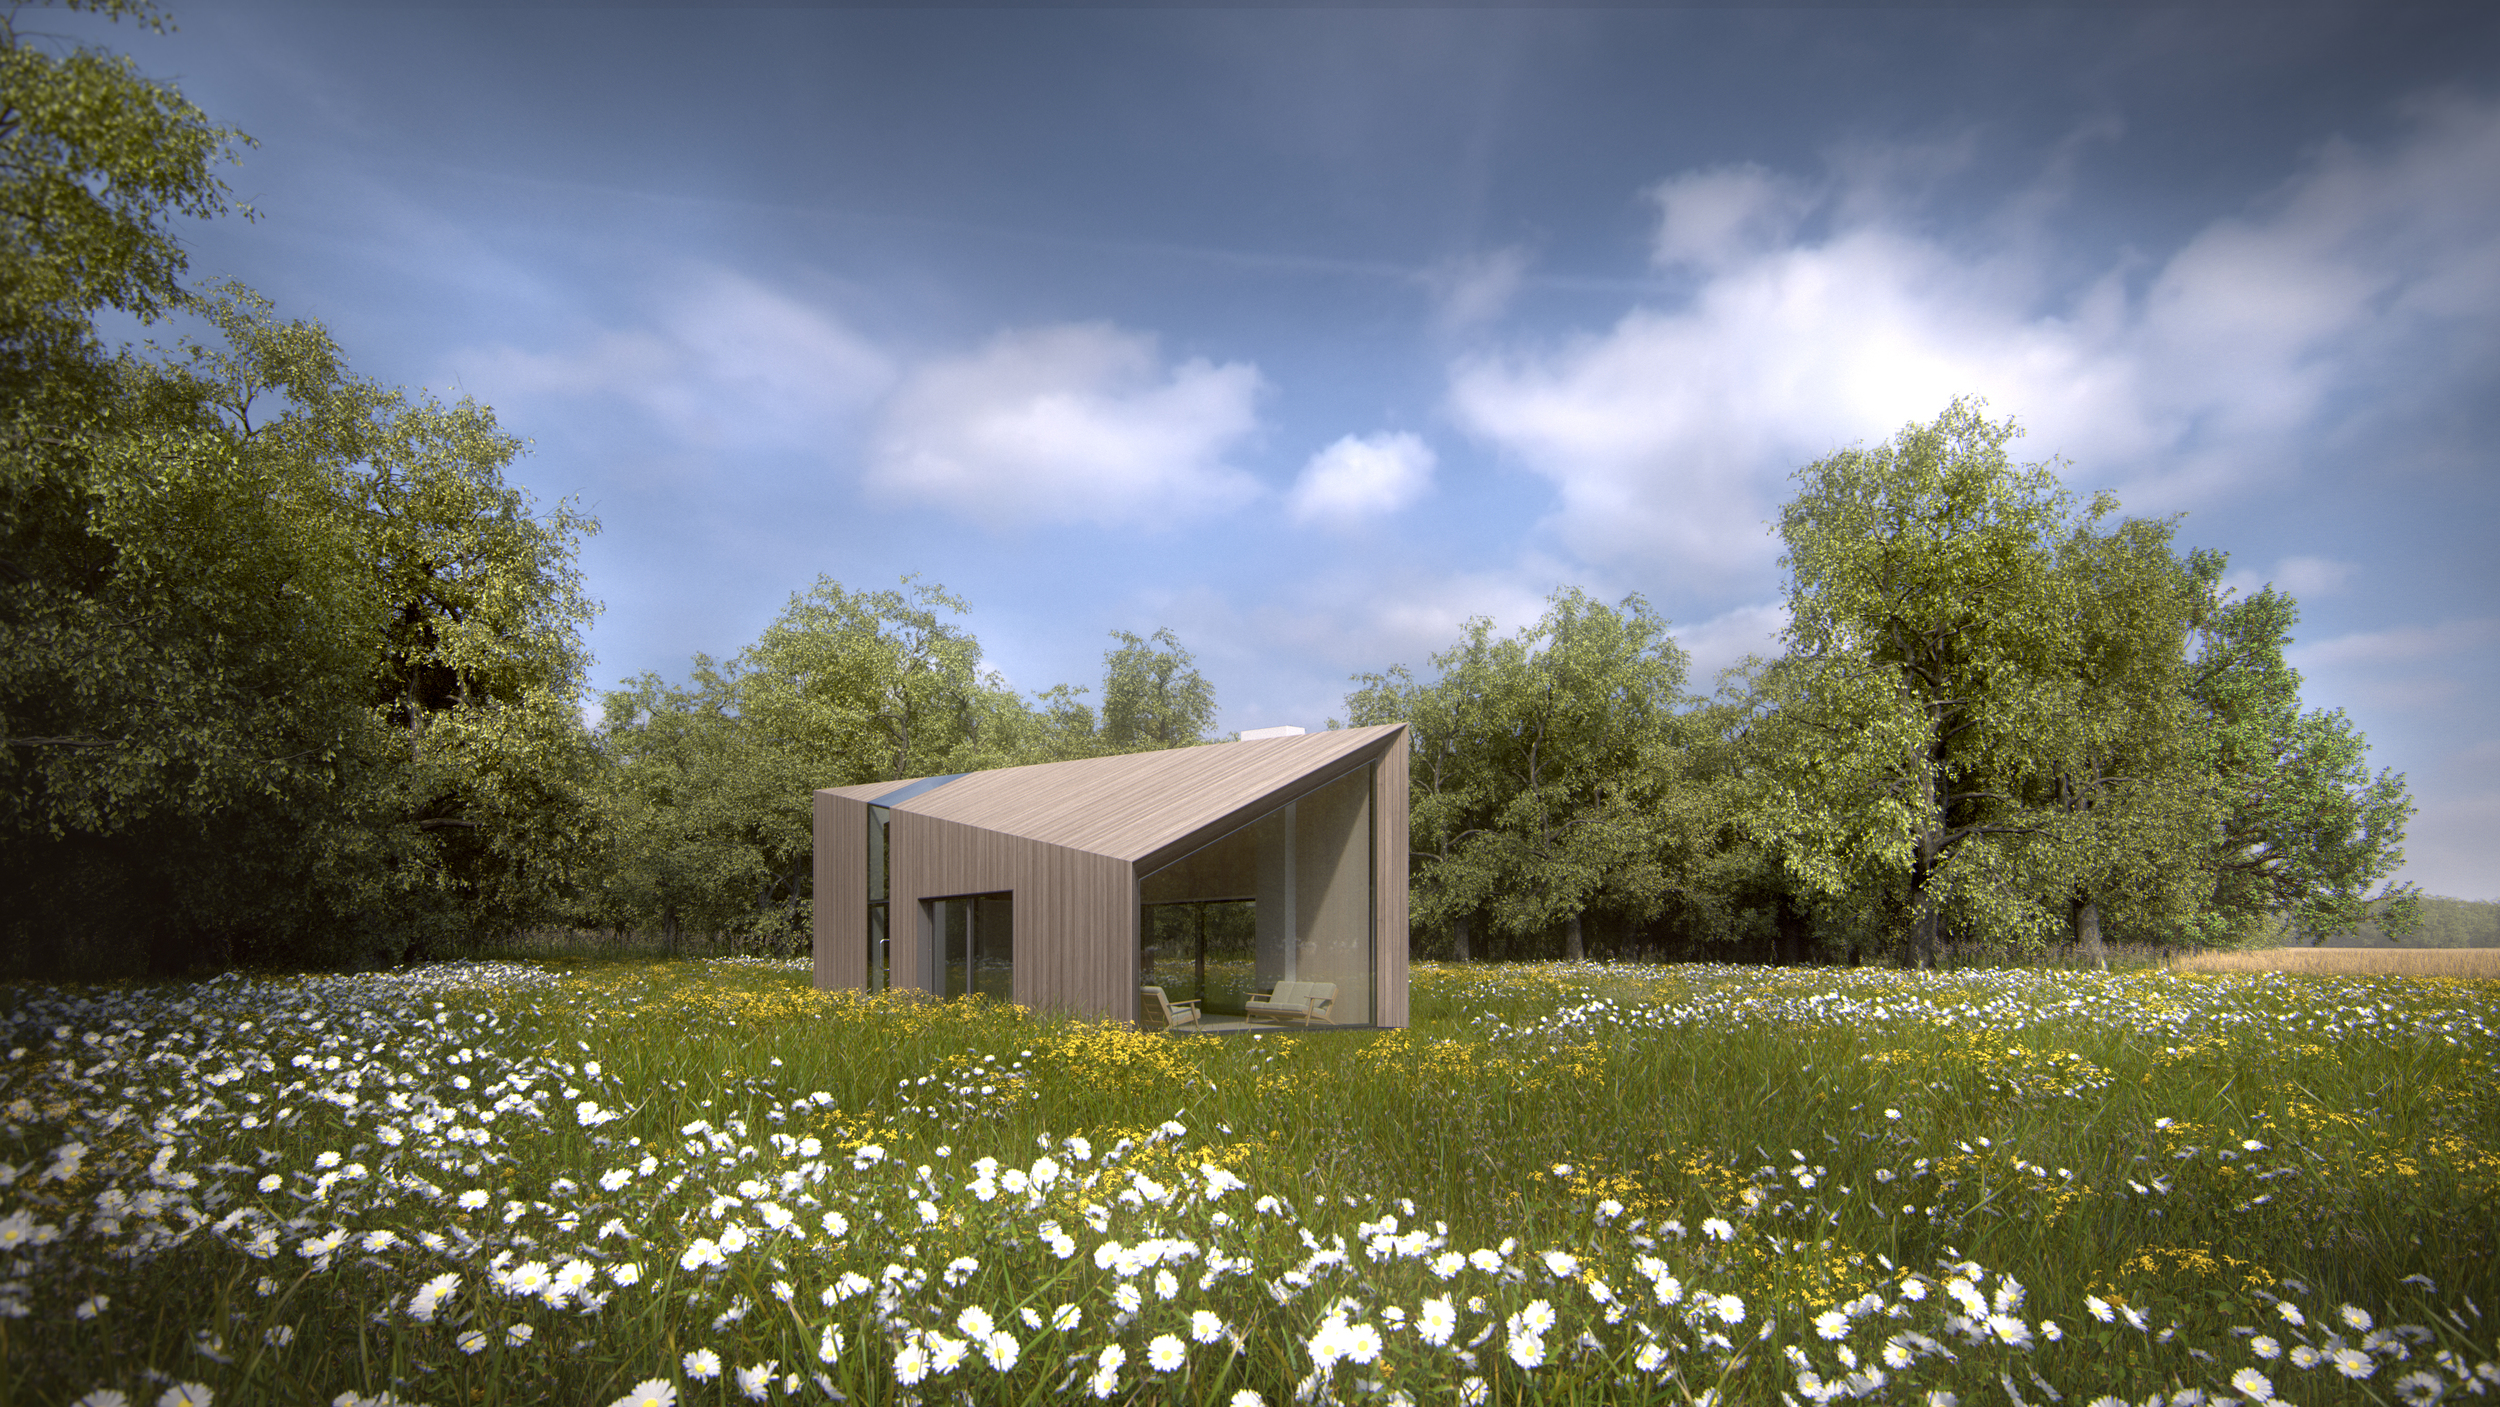 New Build Green Belt House - Wildflower Meadow 2